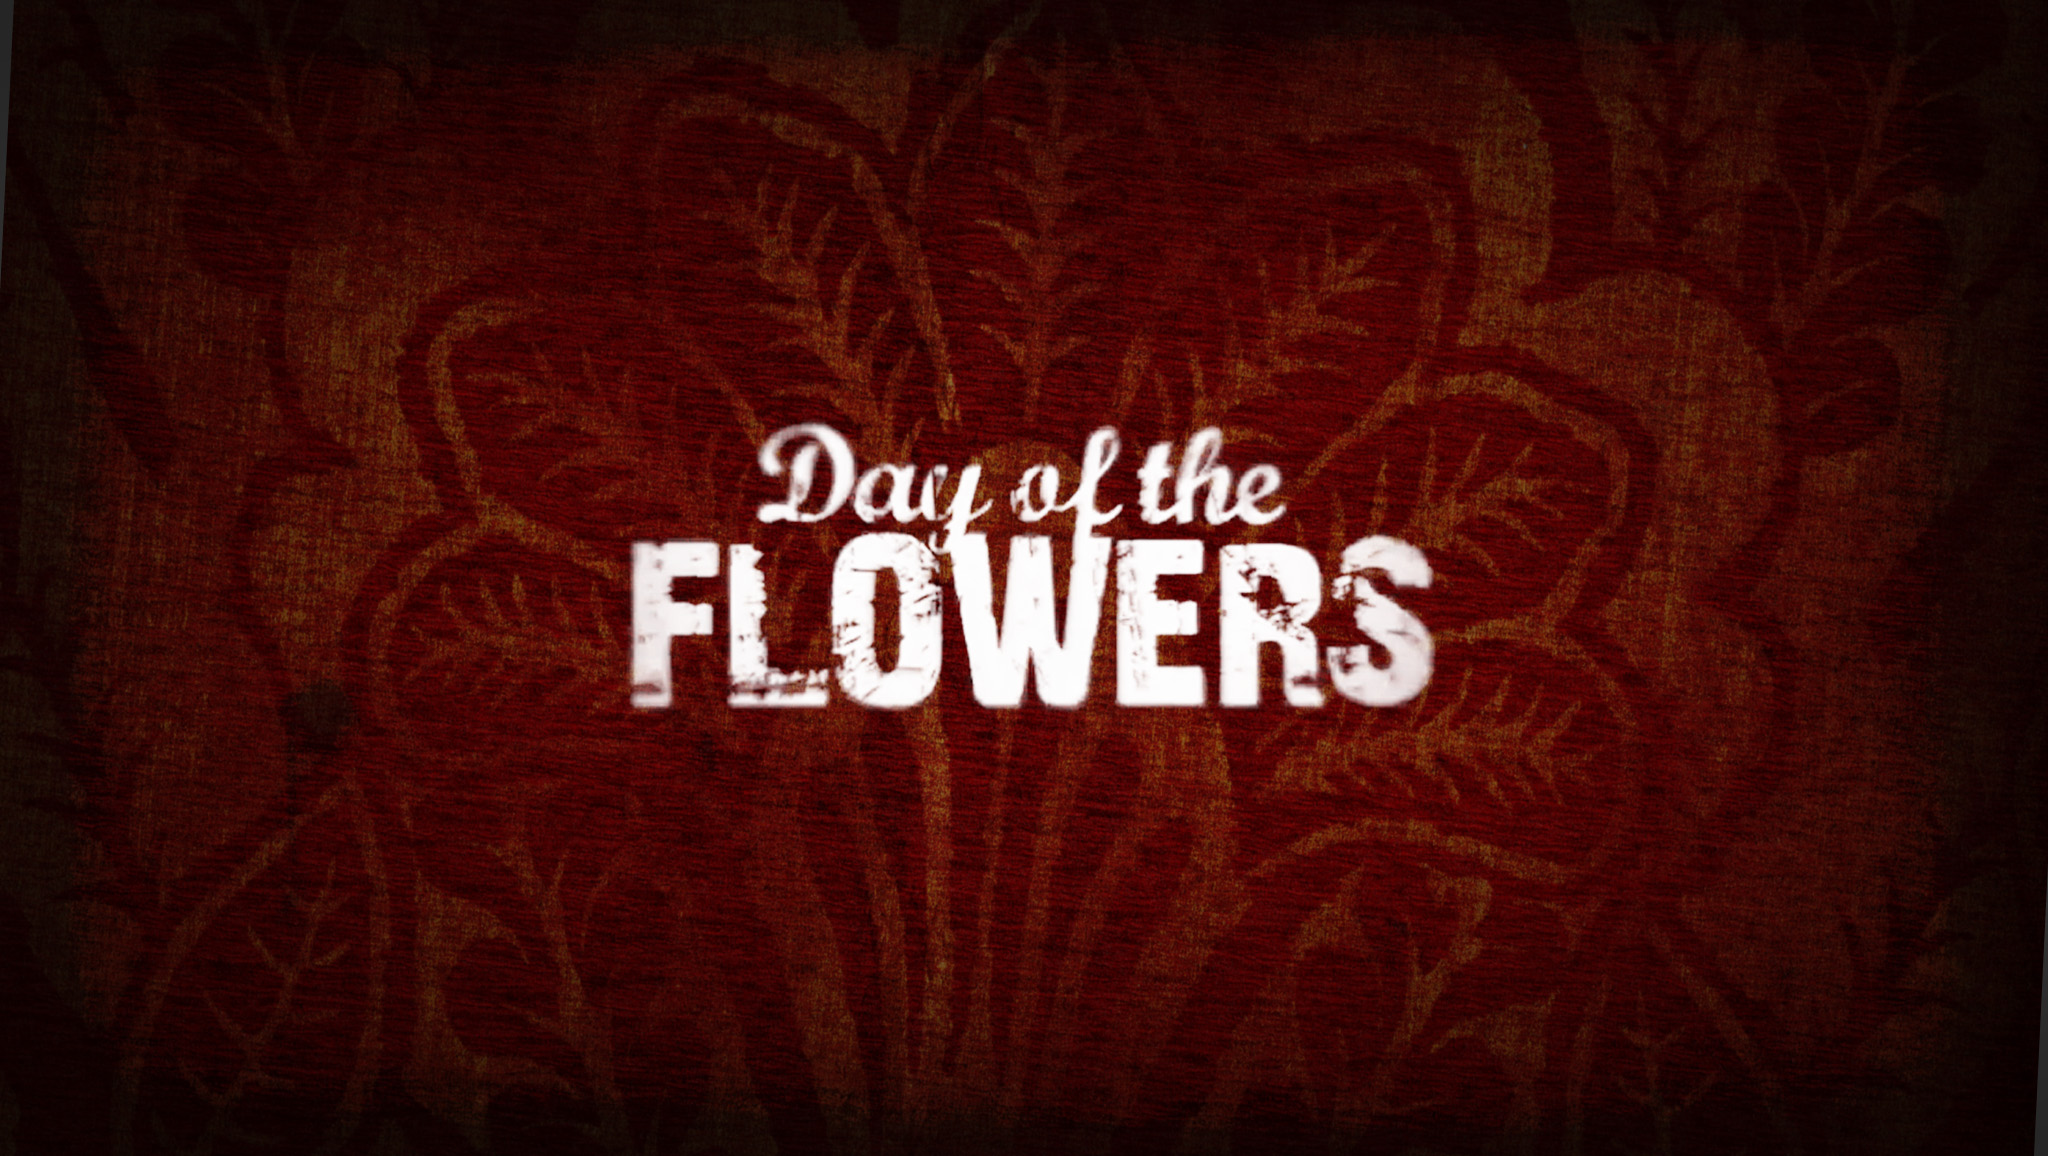 Day of the Flowers main title frame